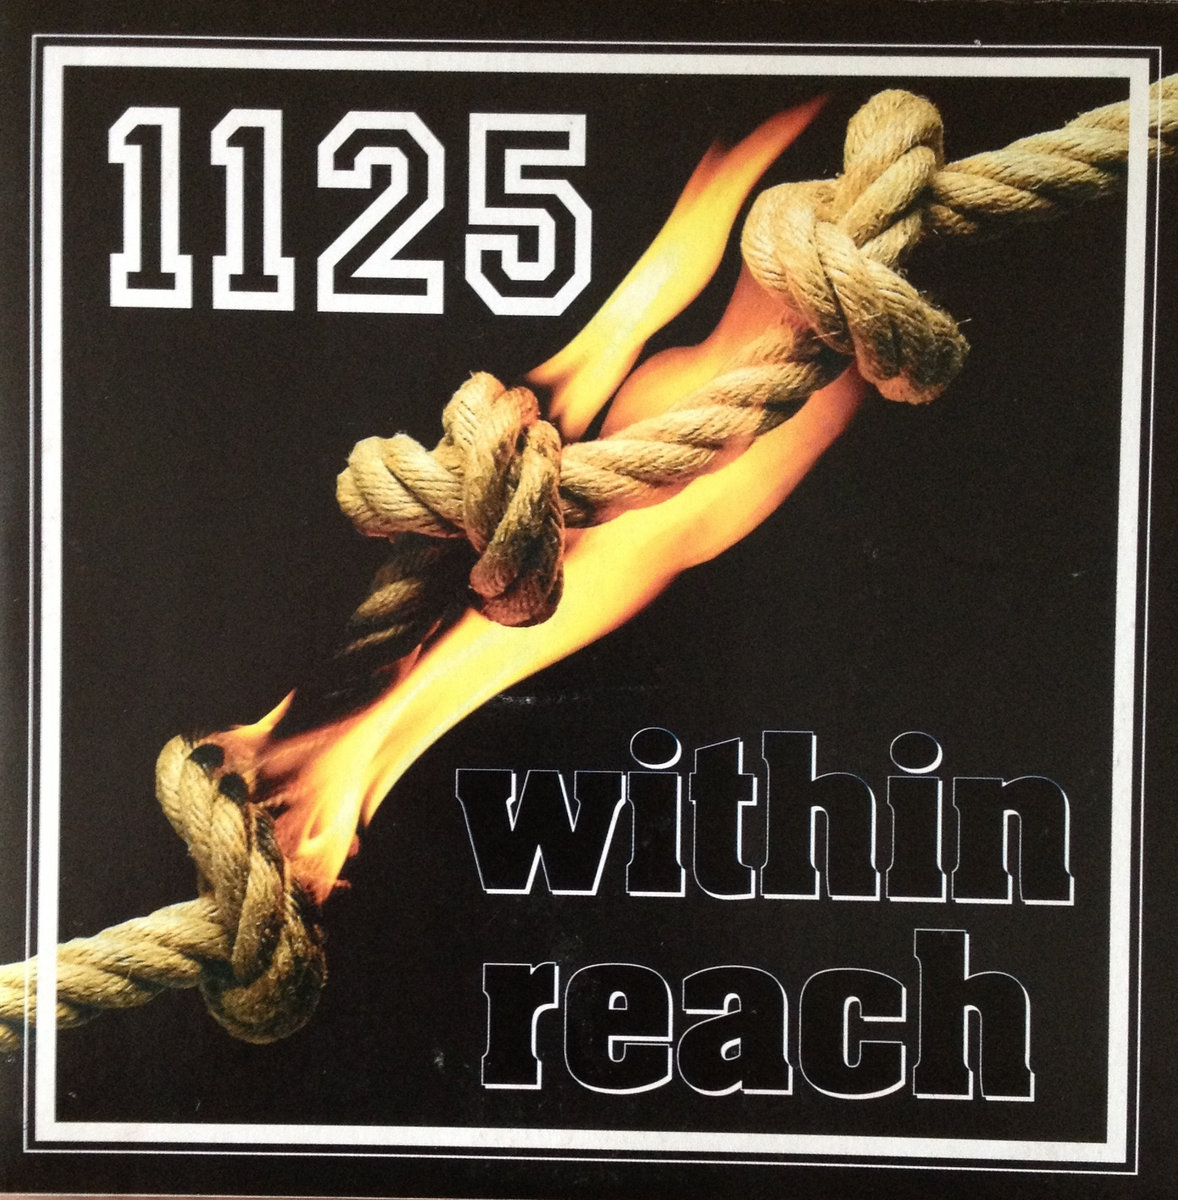 "from 1125 / Within Reach split 7"" by 1125"